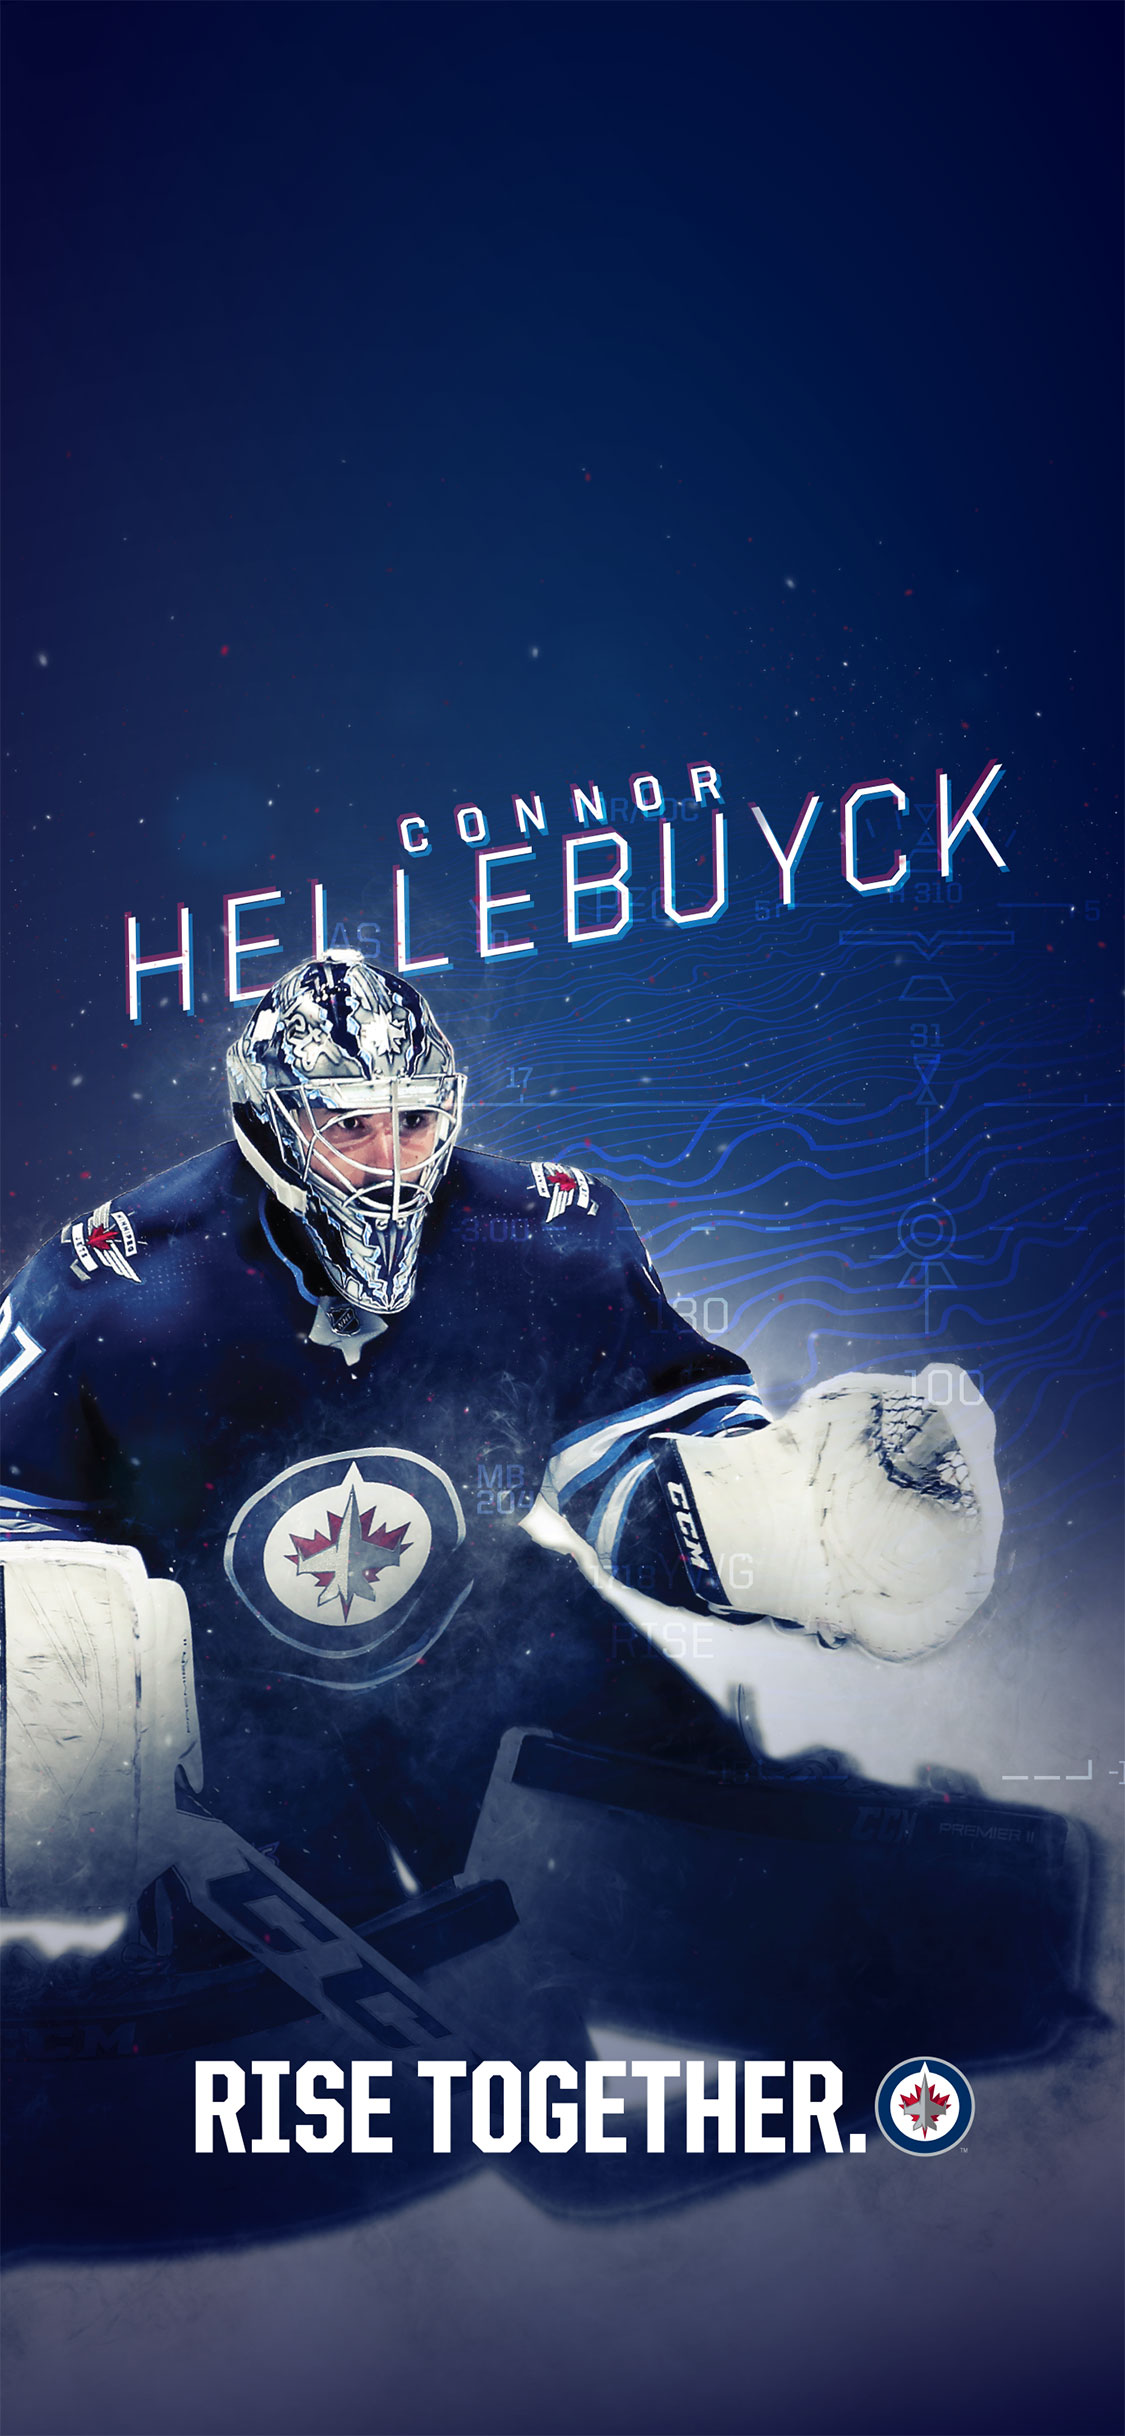 Winnipeg Jets Wallpapers 94 images in Collection Page 3 1125x2436